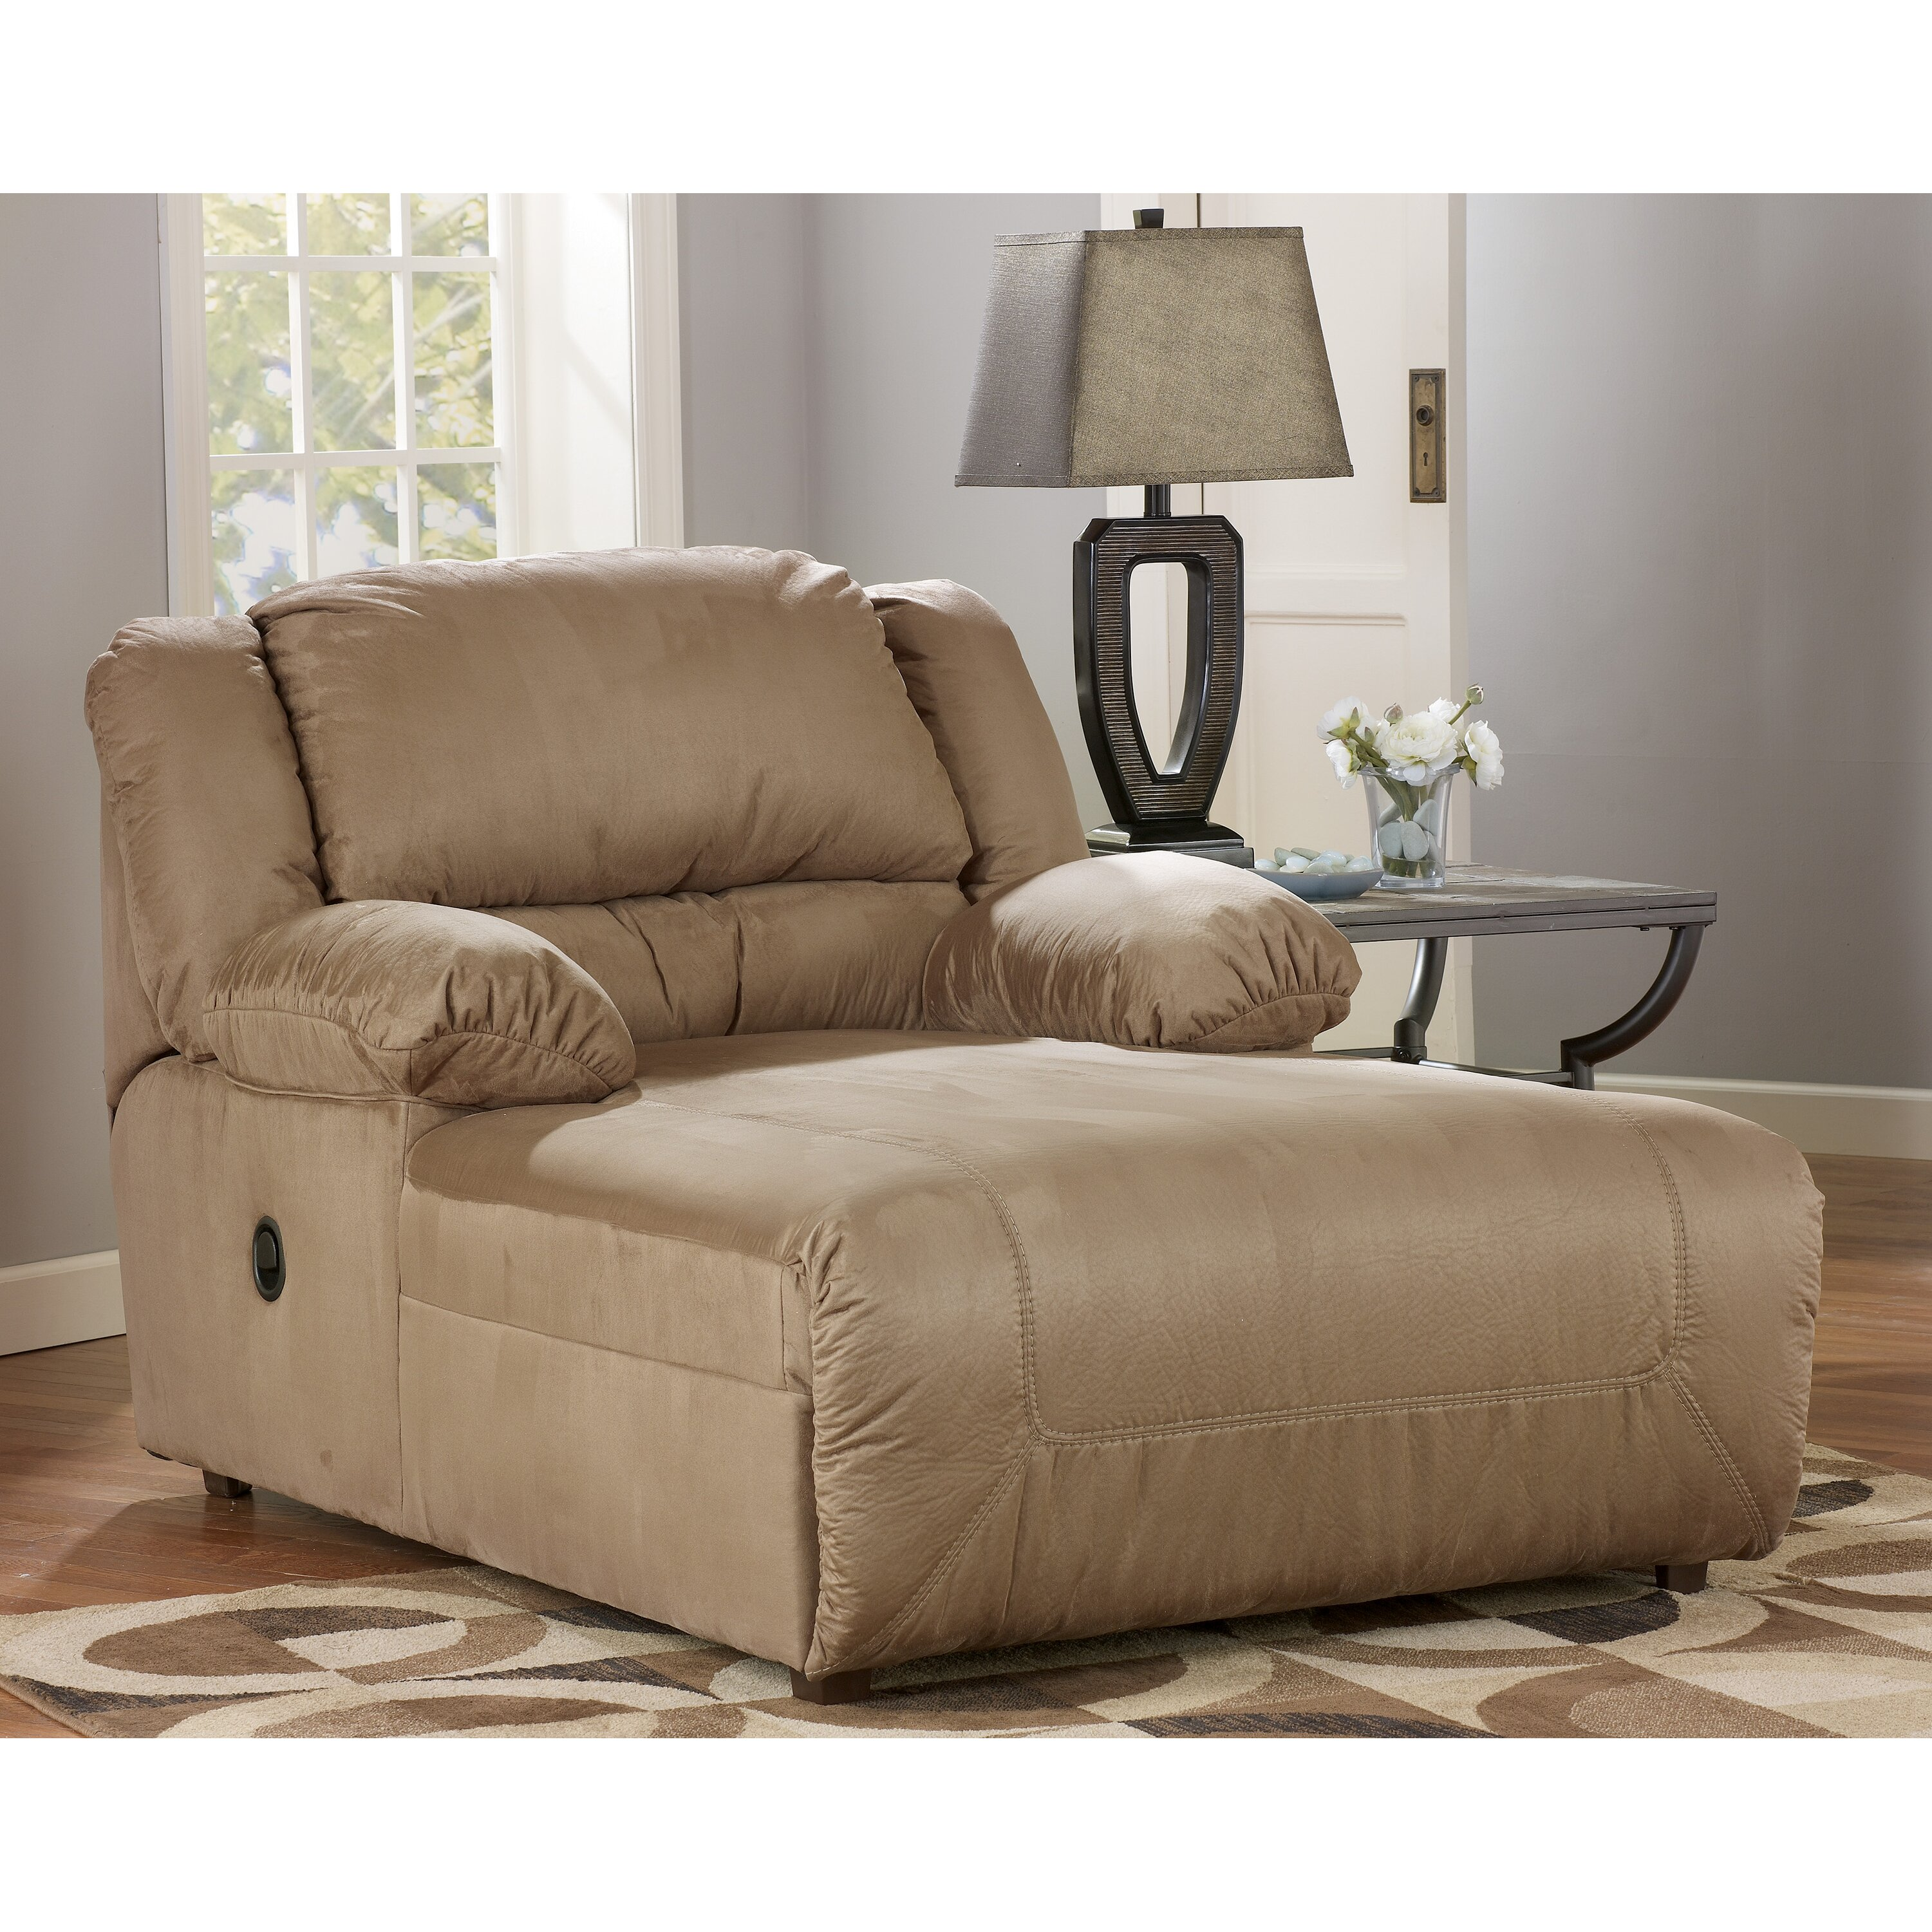 Living Room Chaise Chaise Lounge Chairs Youll Love Wayfair